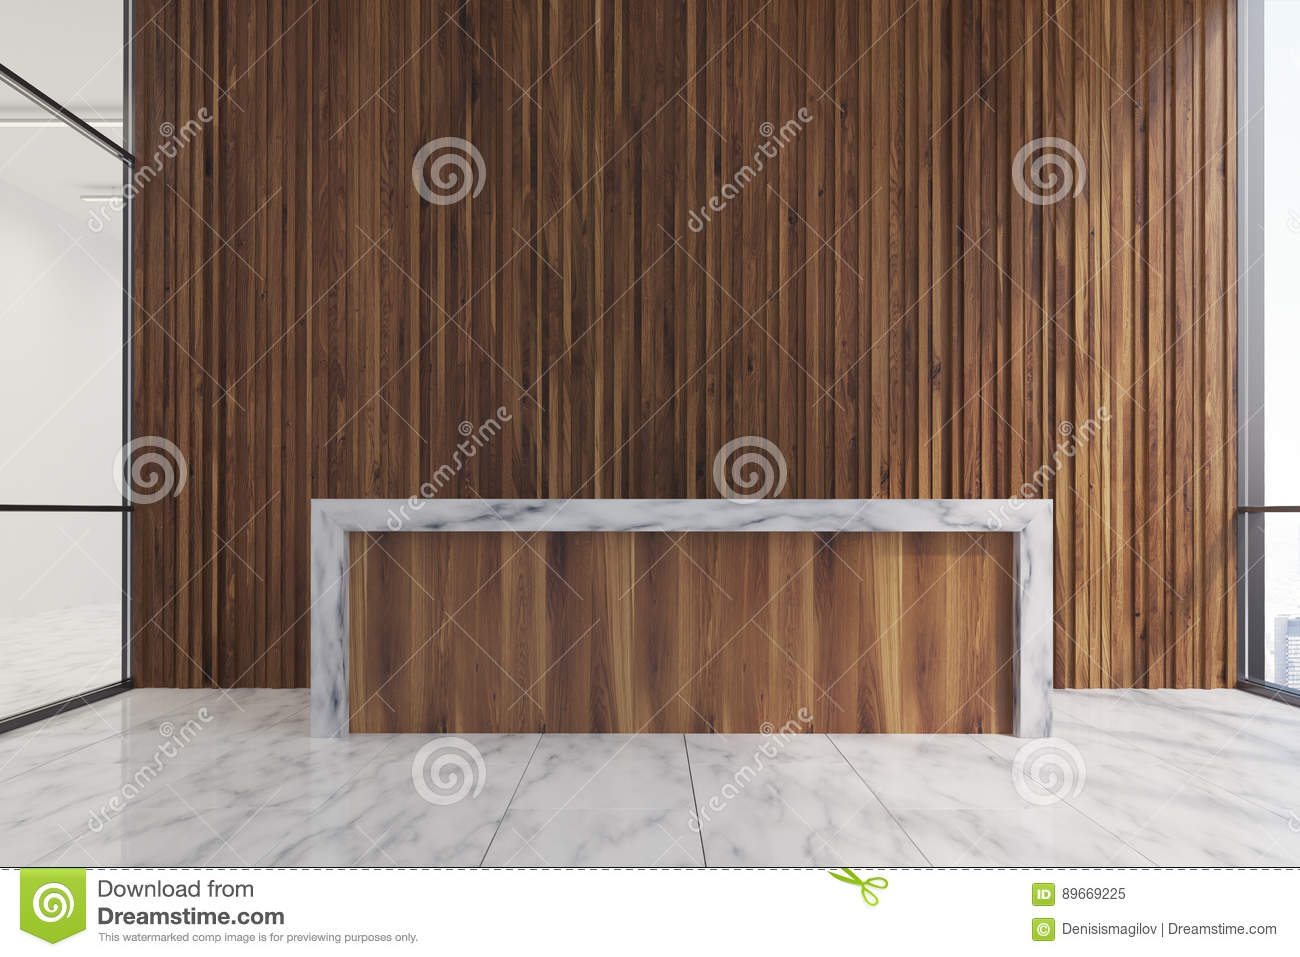 Wooden Walls Light Wood Reception Wooden Wall Stock Illustration Image  89669225